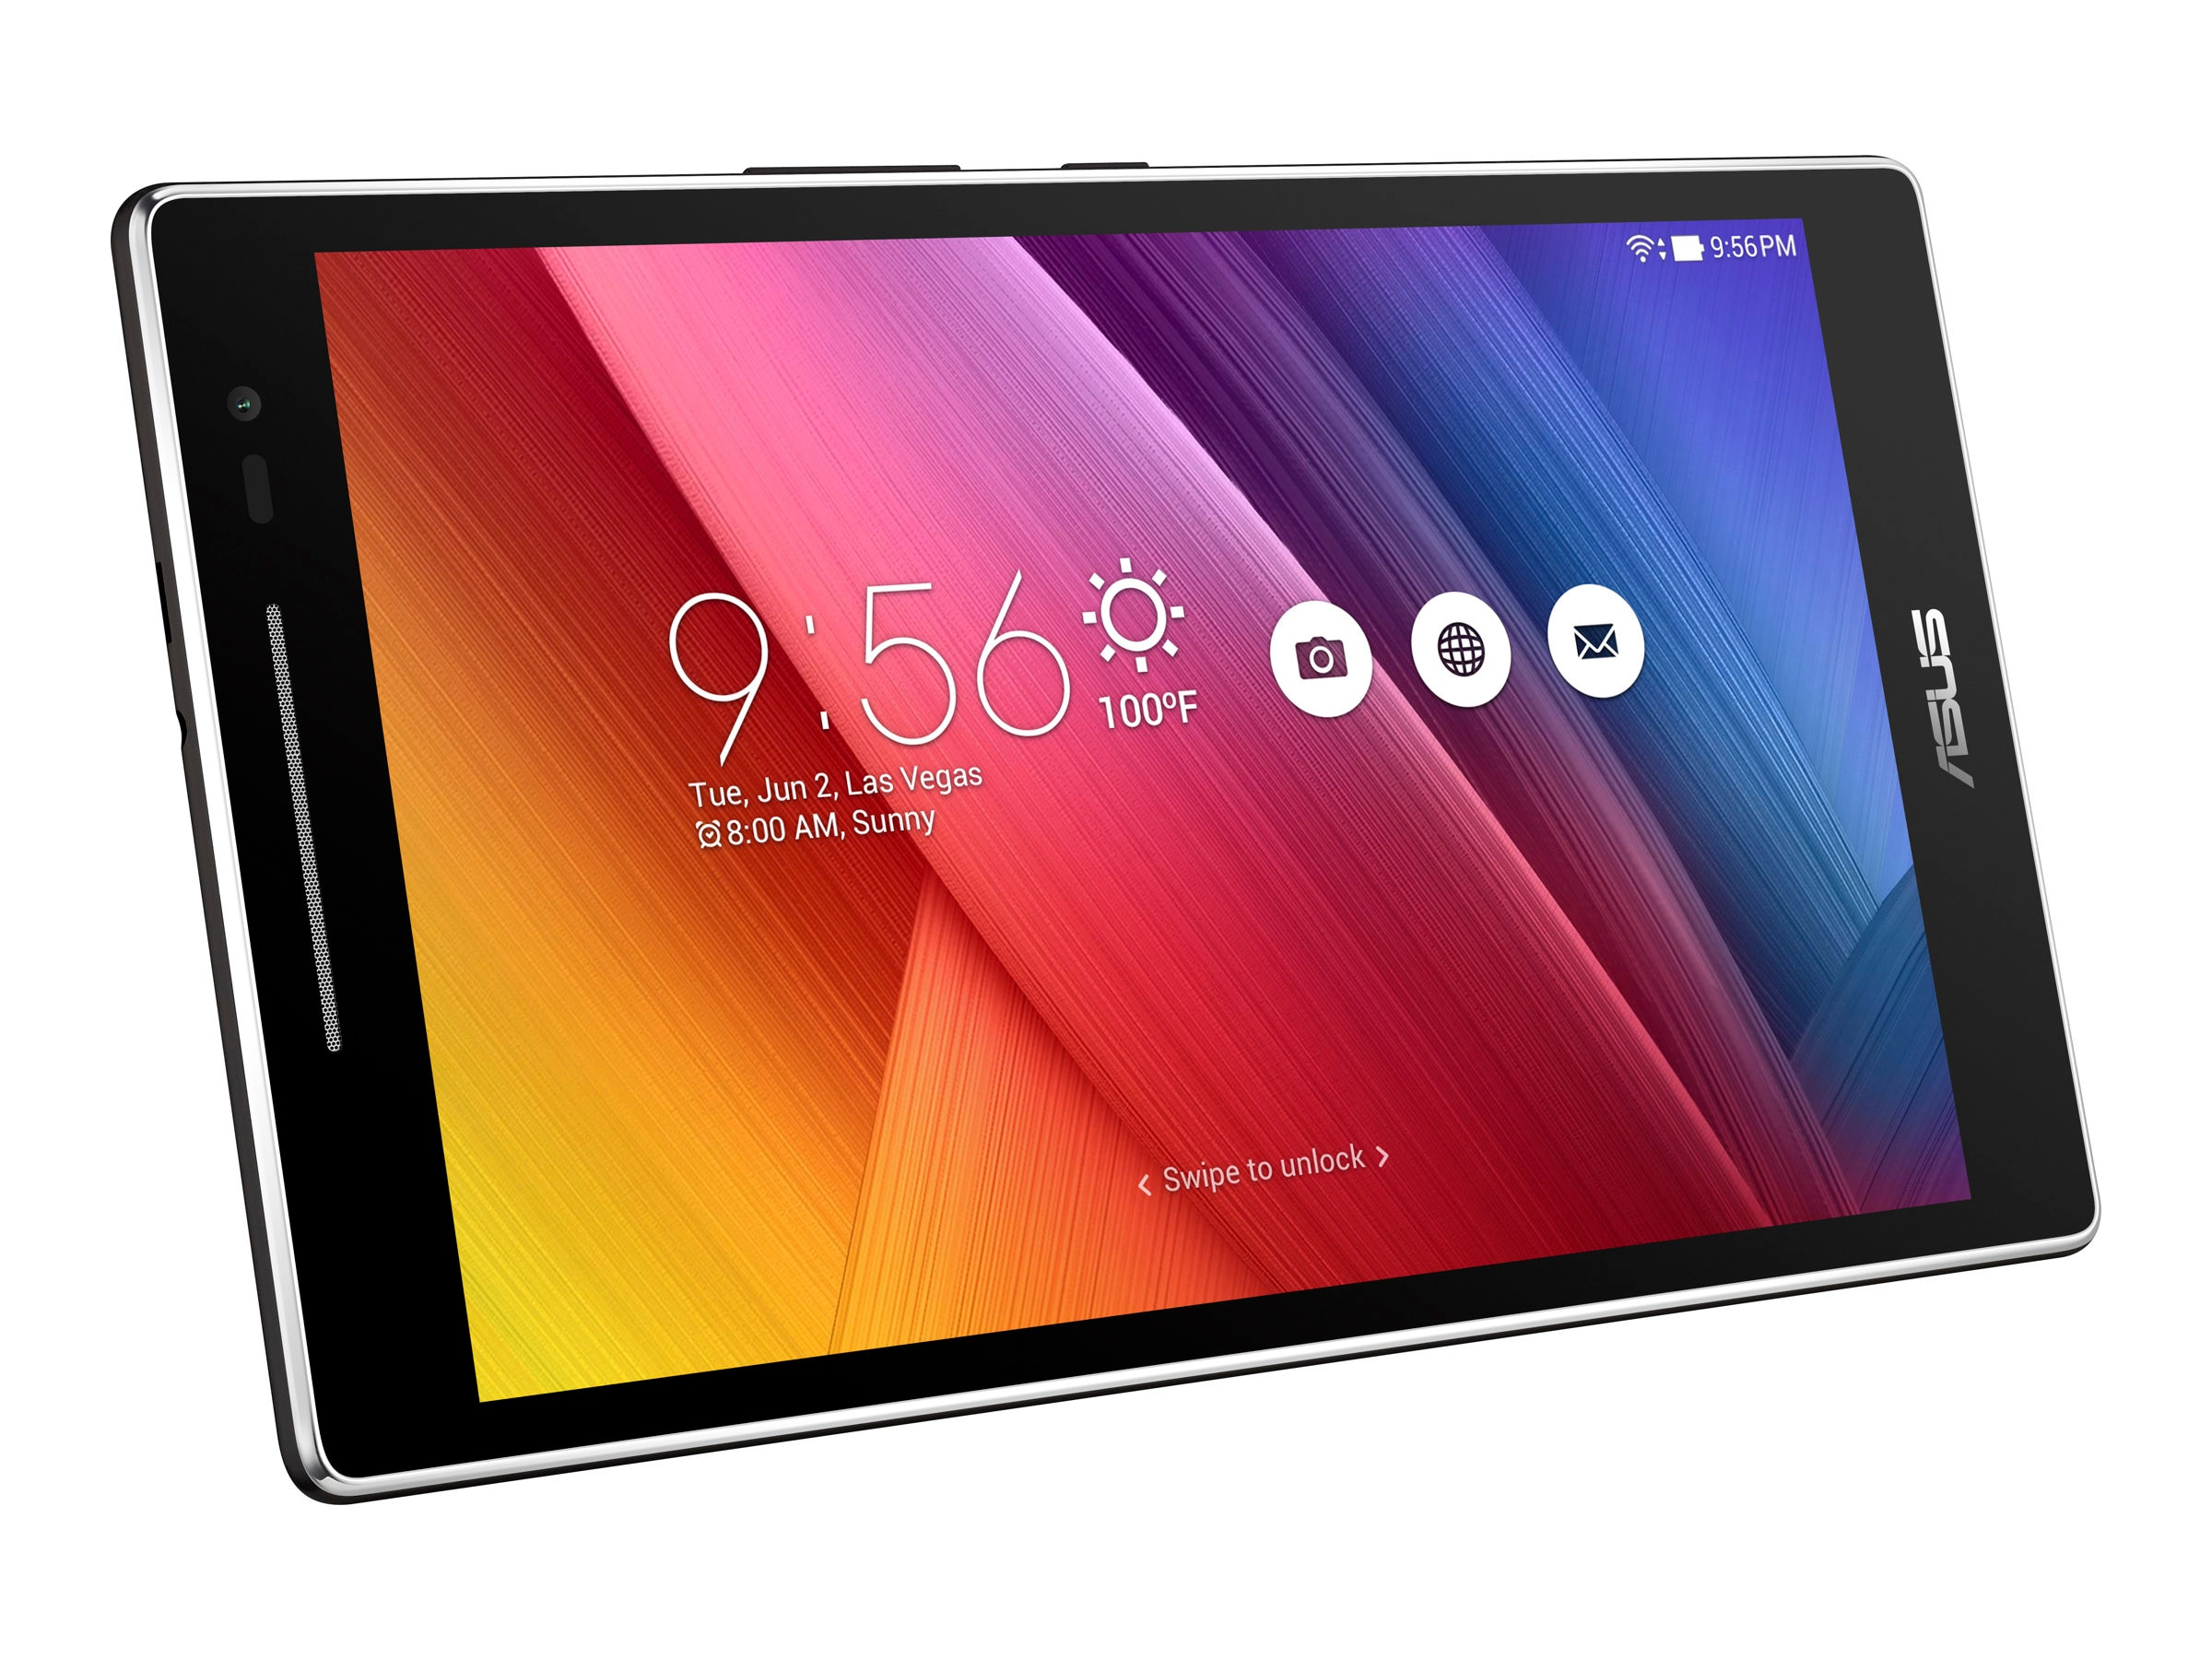 Asus Z380M ZenPad MT8163 2GB 6GB 8 Android 5.0, Z380M-A2-GR